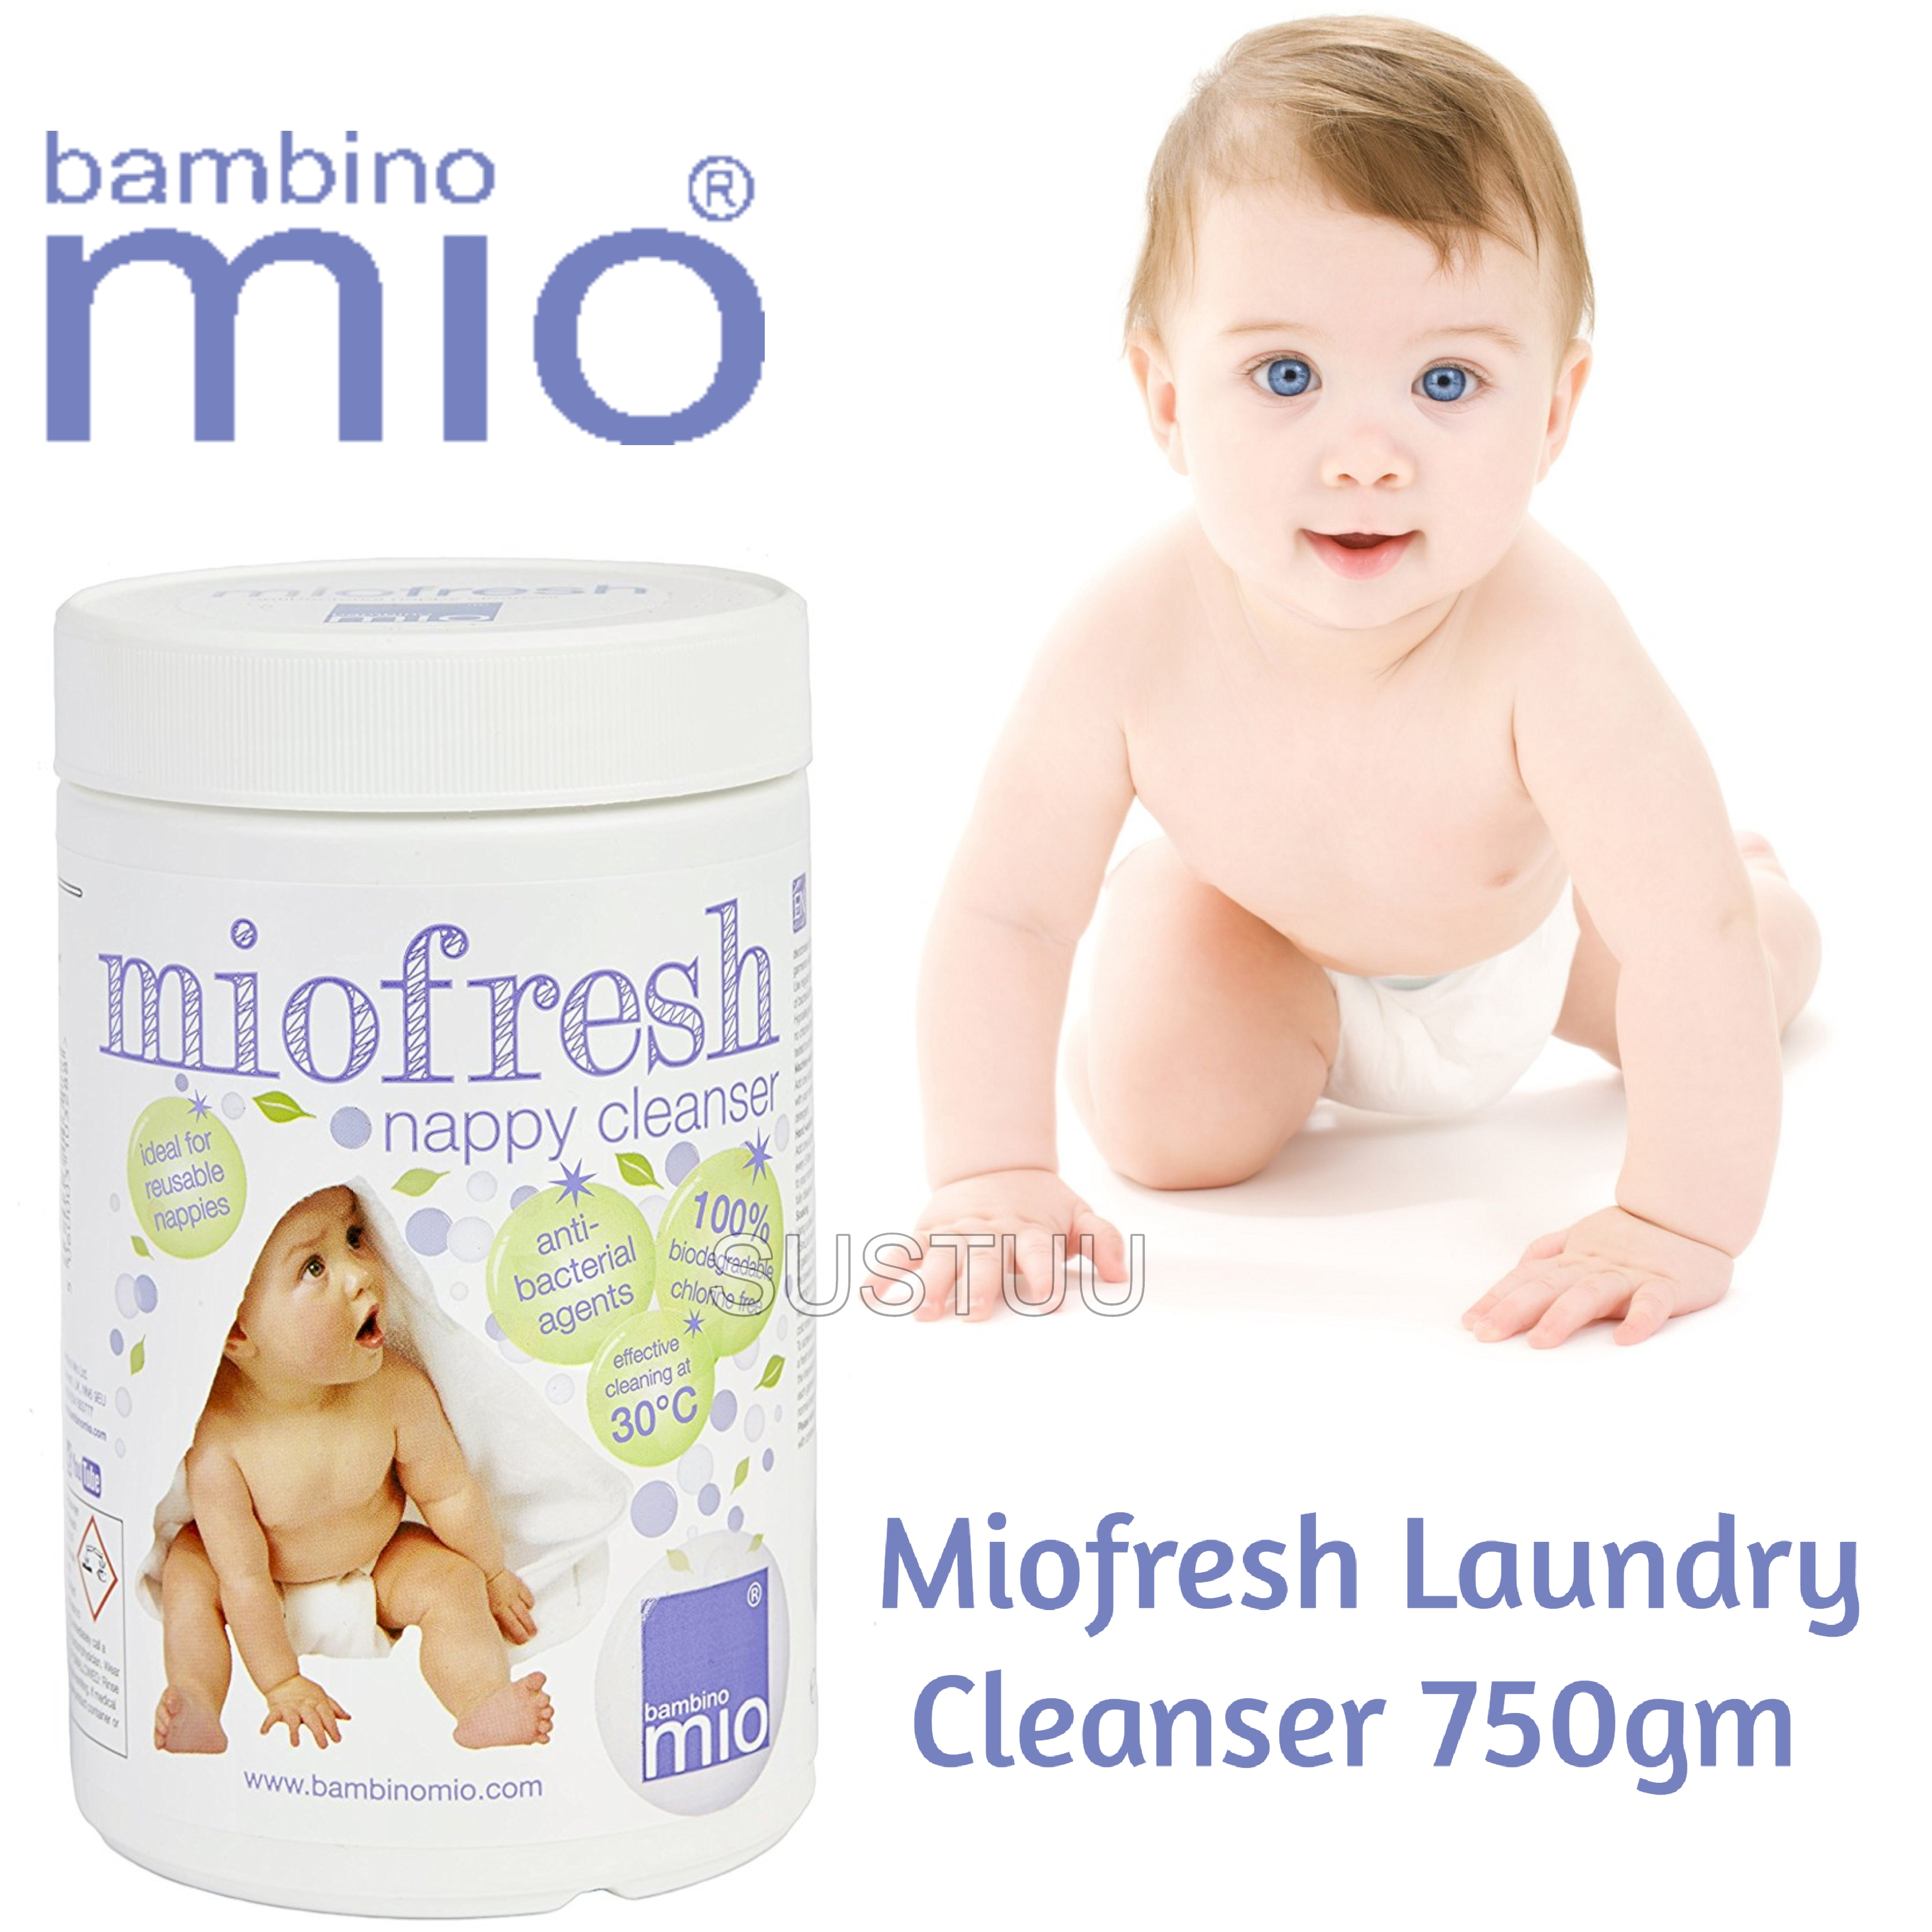 Bambino Mio Miofresh Laundry Cleanser|Kid's Nappy/Diapers Powder Cleaner|750gm|